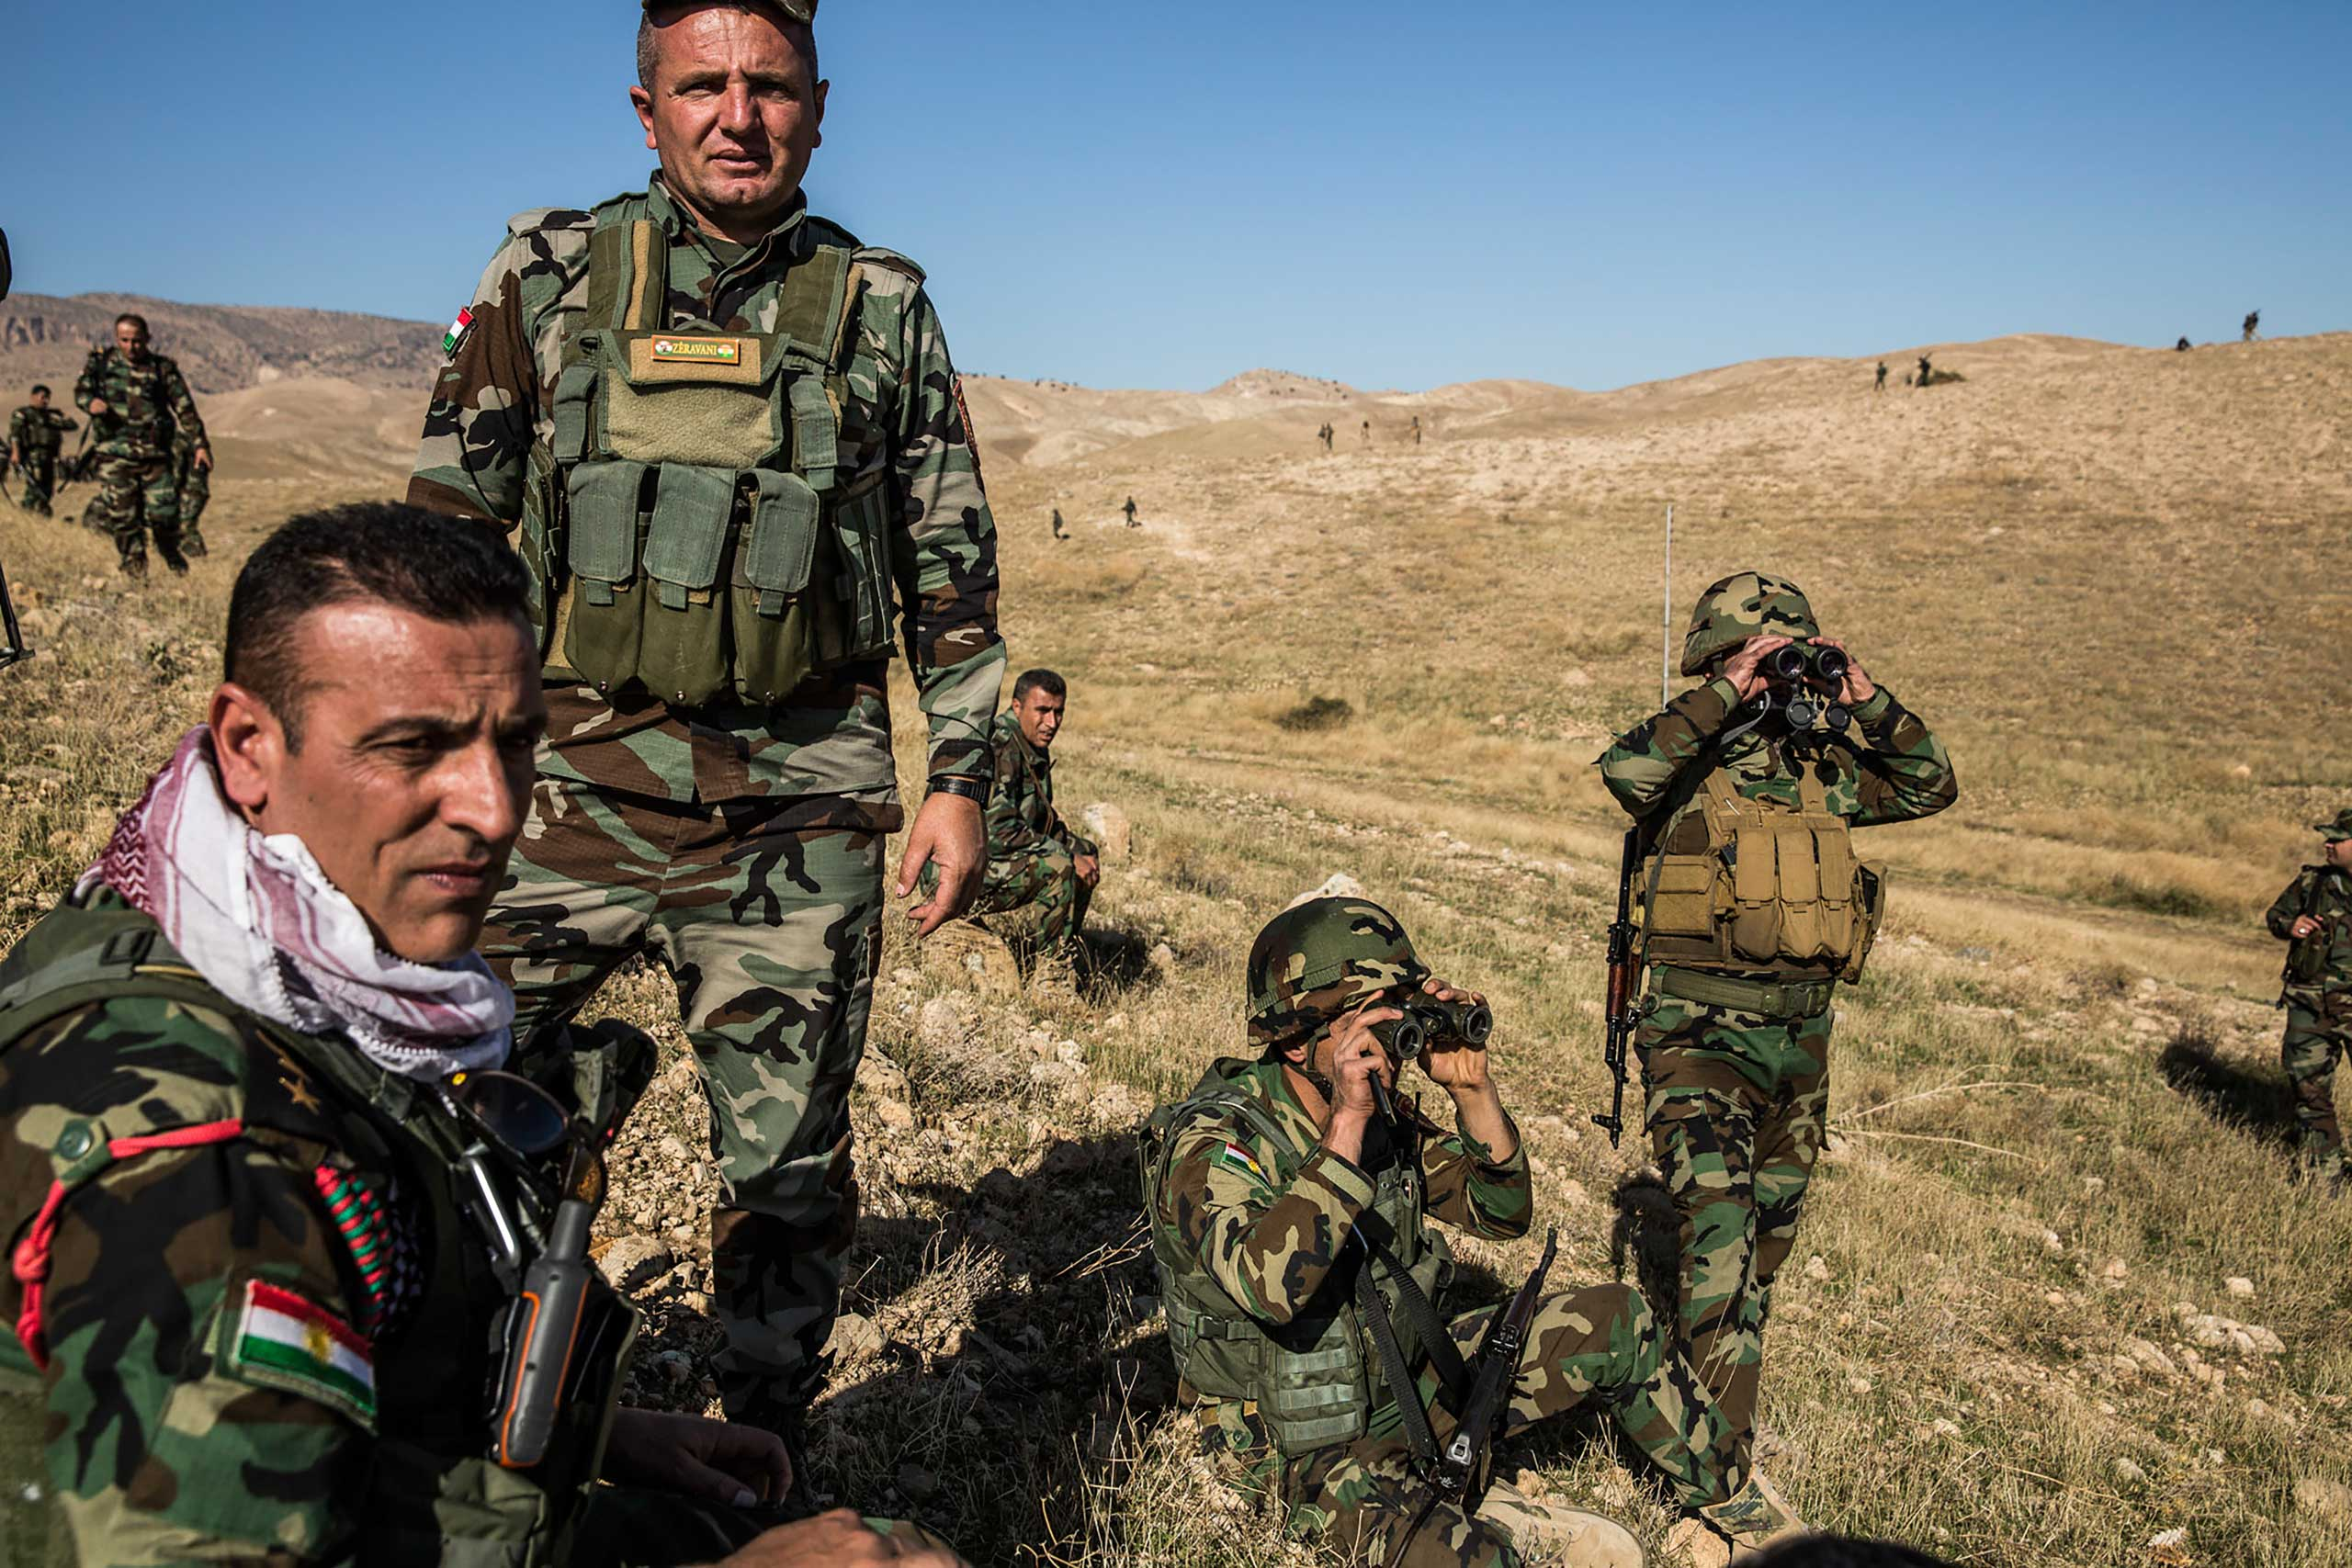 The New York Times: Kurds Launch Offensive Against ISIS in Mount Sinjar, IraqPesh merga fighters watched from a hilltop as vehicles from their unit deployed across Highway 47, below them.